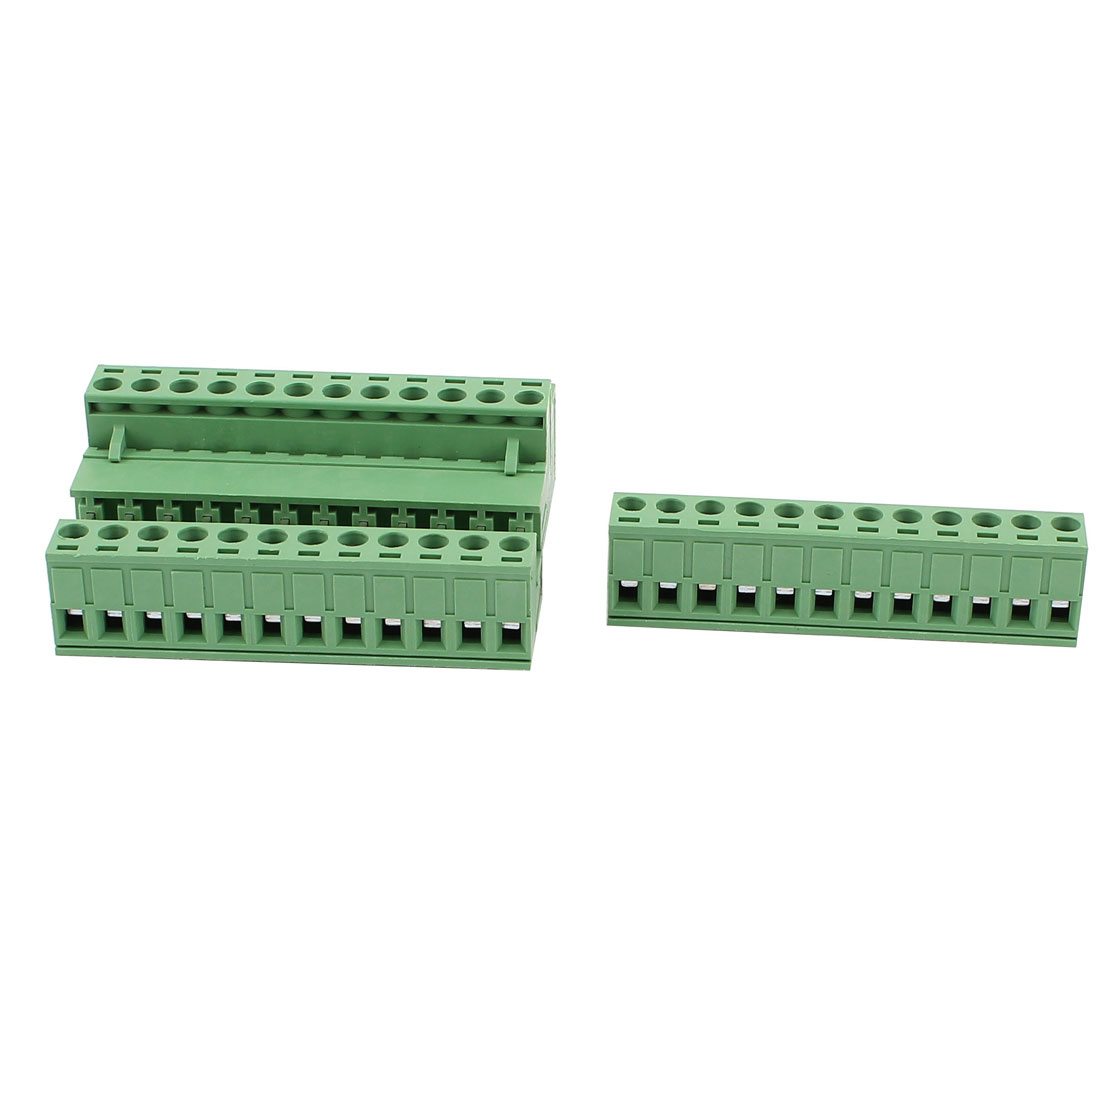 4 Pcs AC 300V 10A 12P PCB Terminal Block Connector 5.08mm Pitch Green